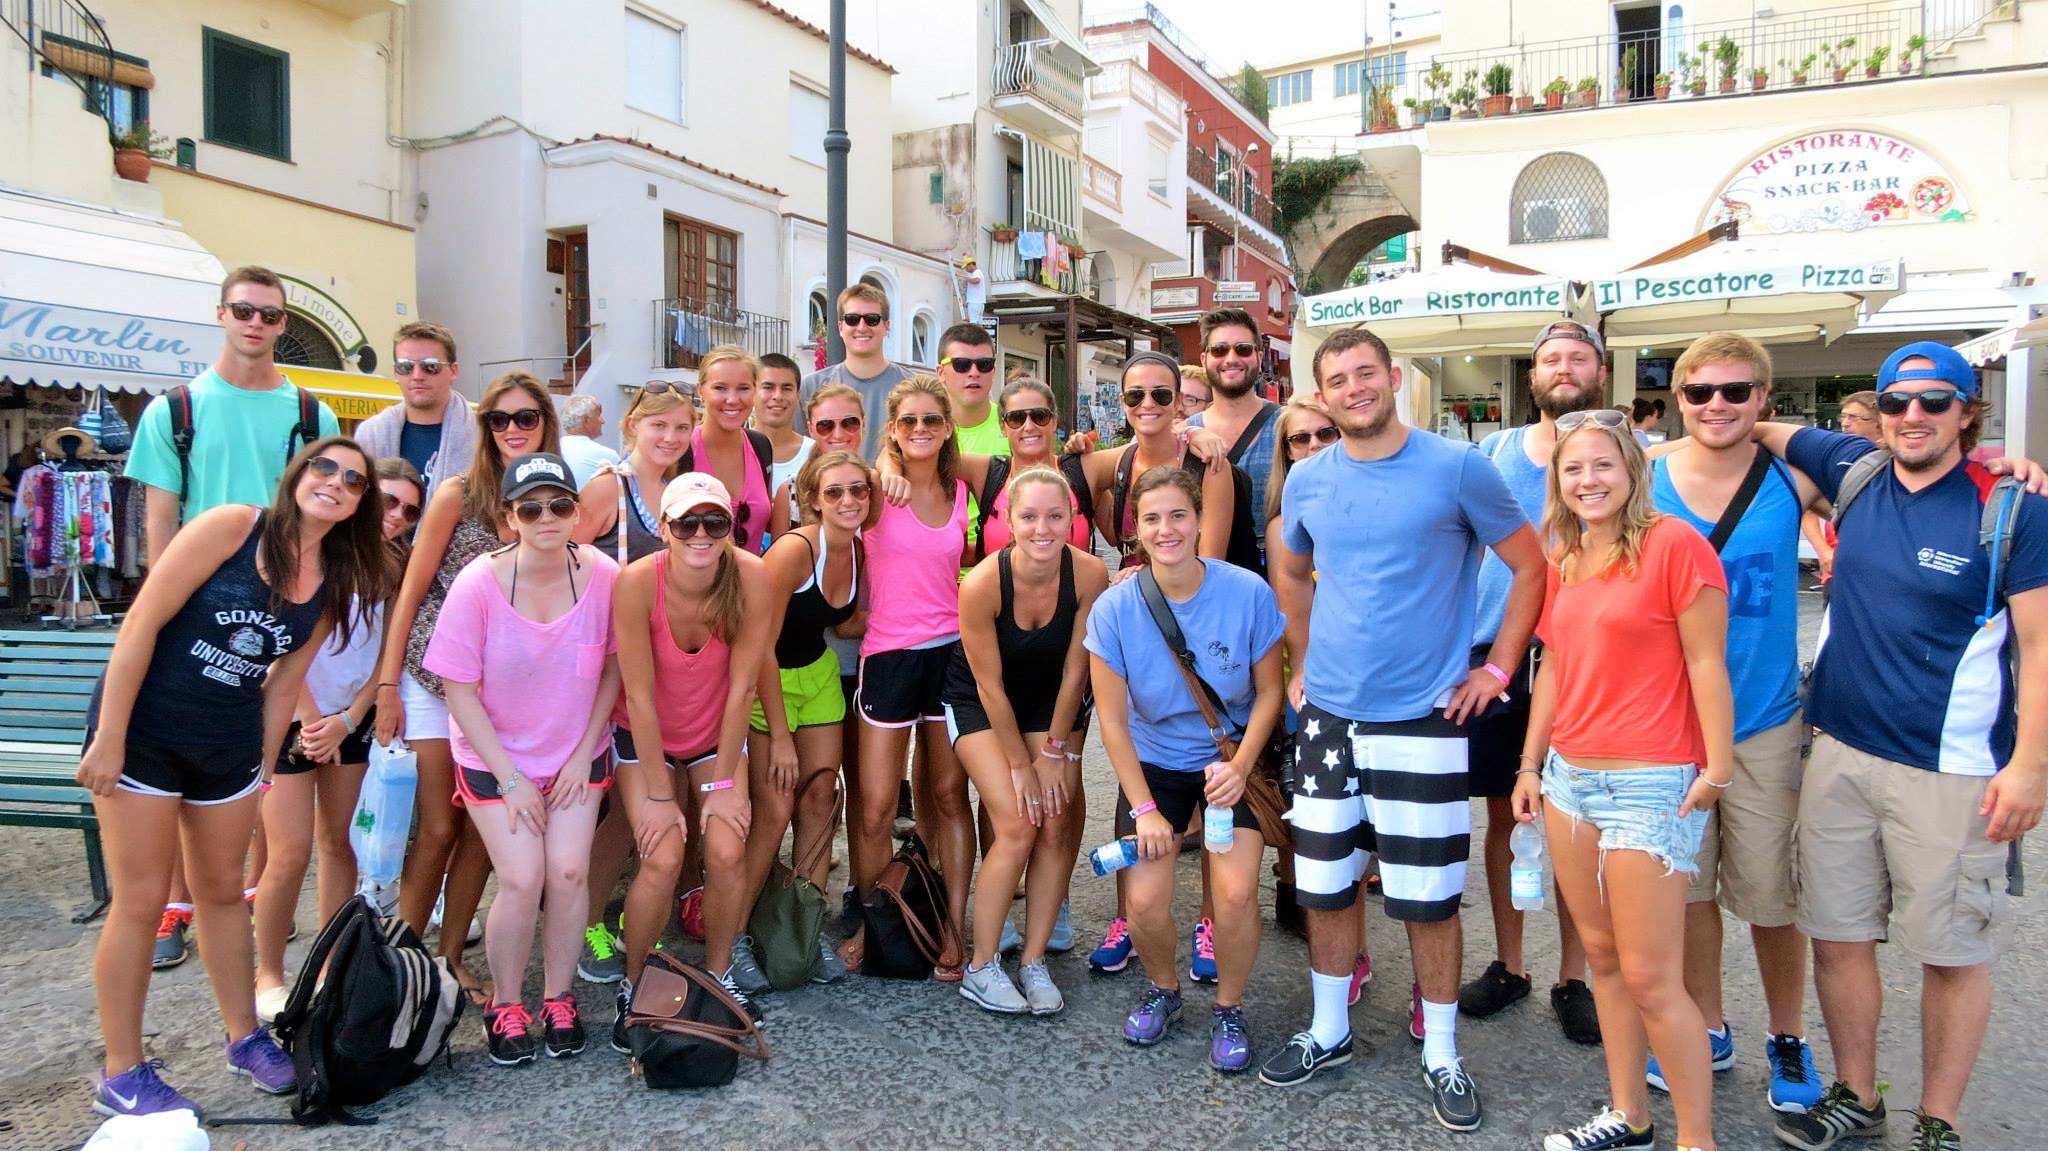 About to help lead a hike in Capri, Italy during our trip to the Amalfi Coast!